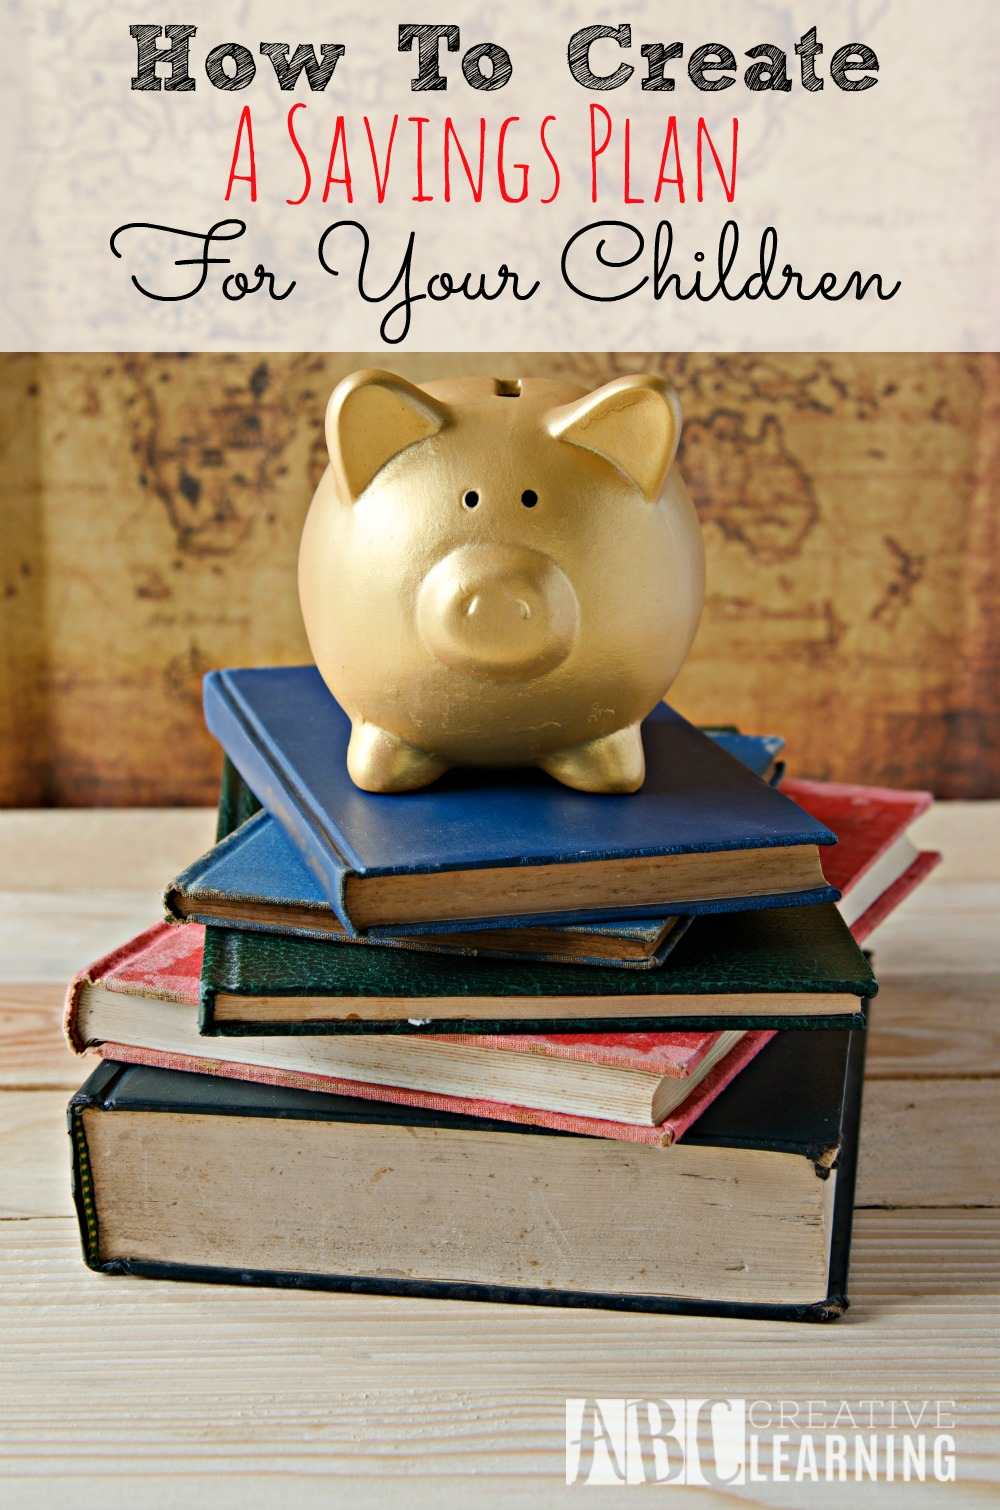 How To Create A College Savings Plan For Your Children